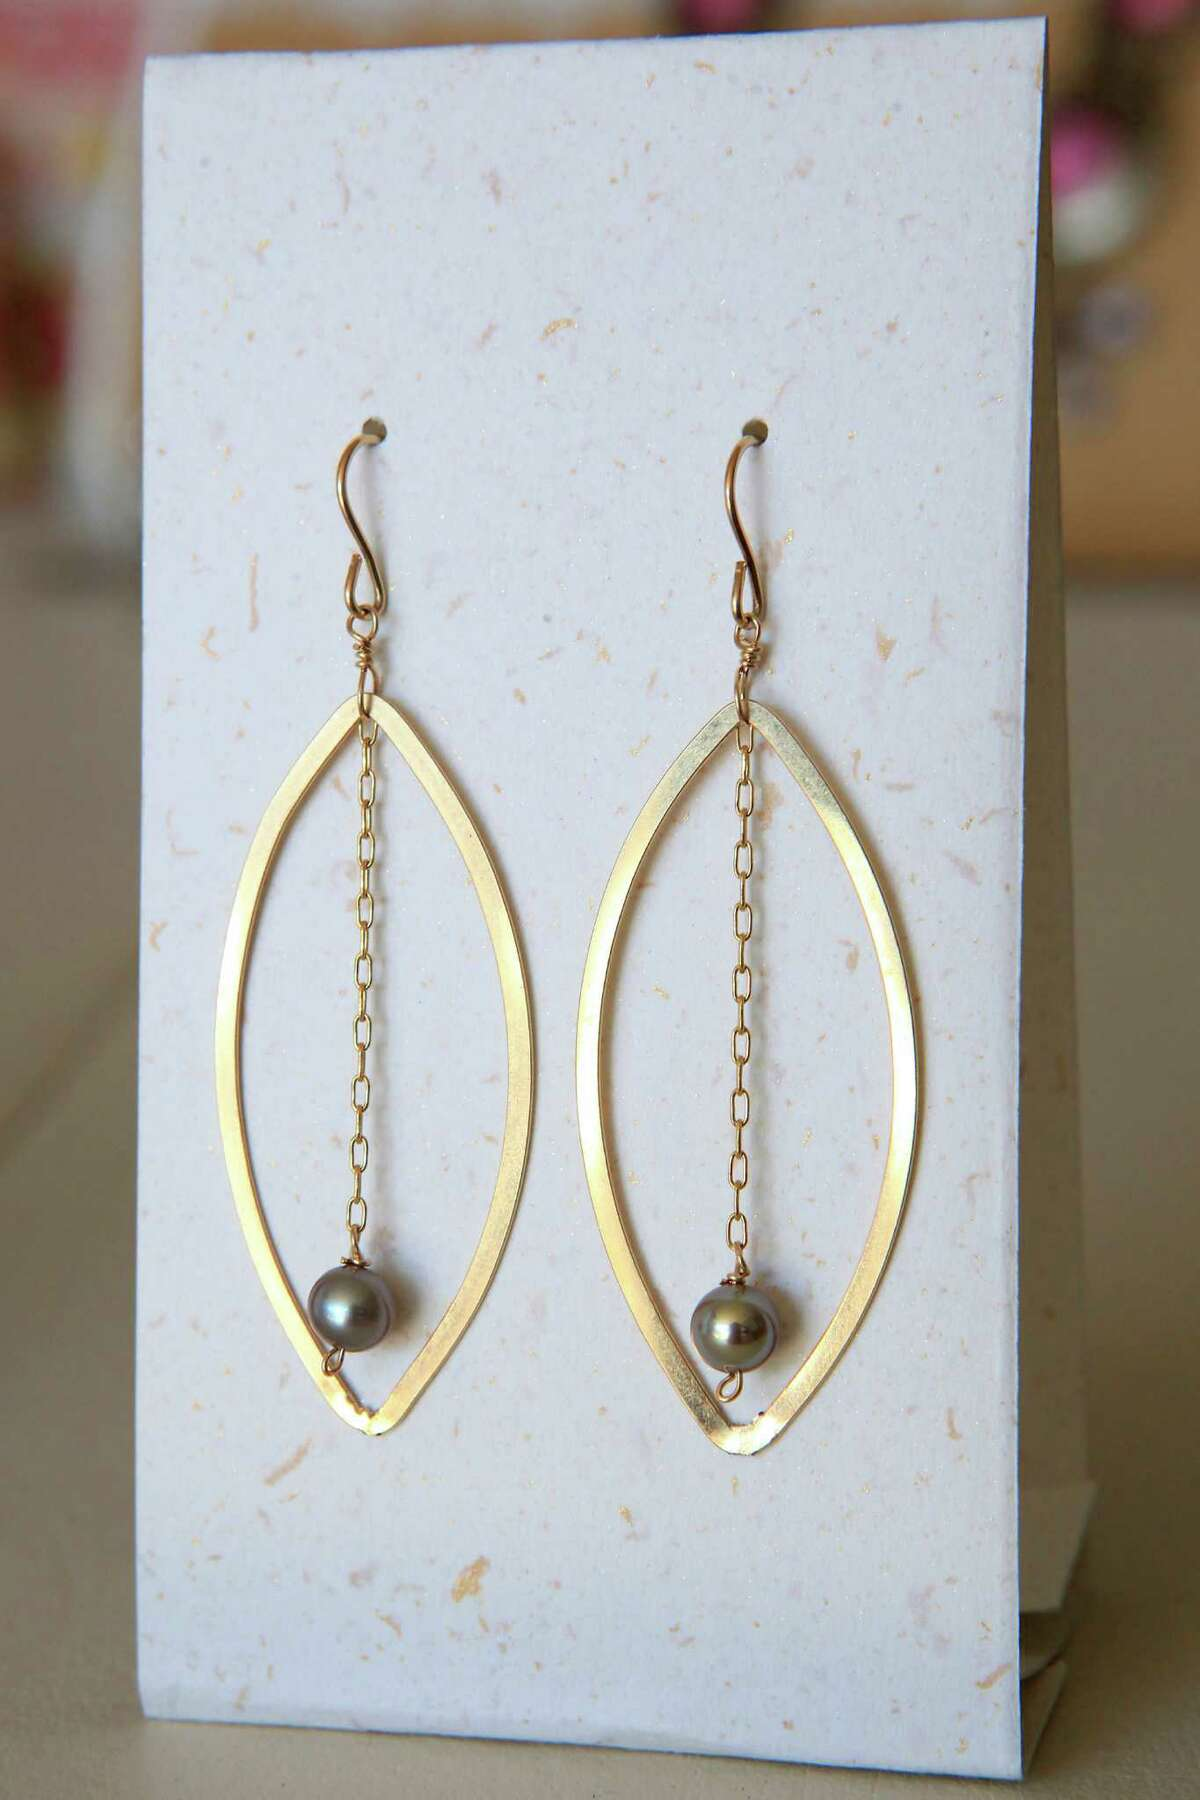 Jewelry by designer Kimberly Jo-Vogel, including these earrings, can be found at Hourglass Boutique in San Mateo.